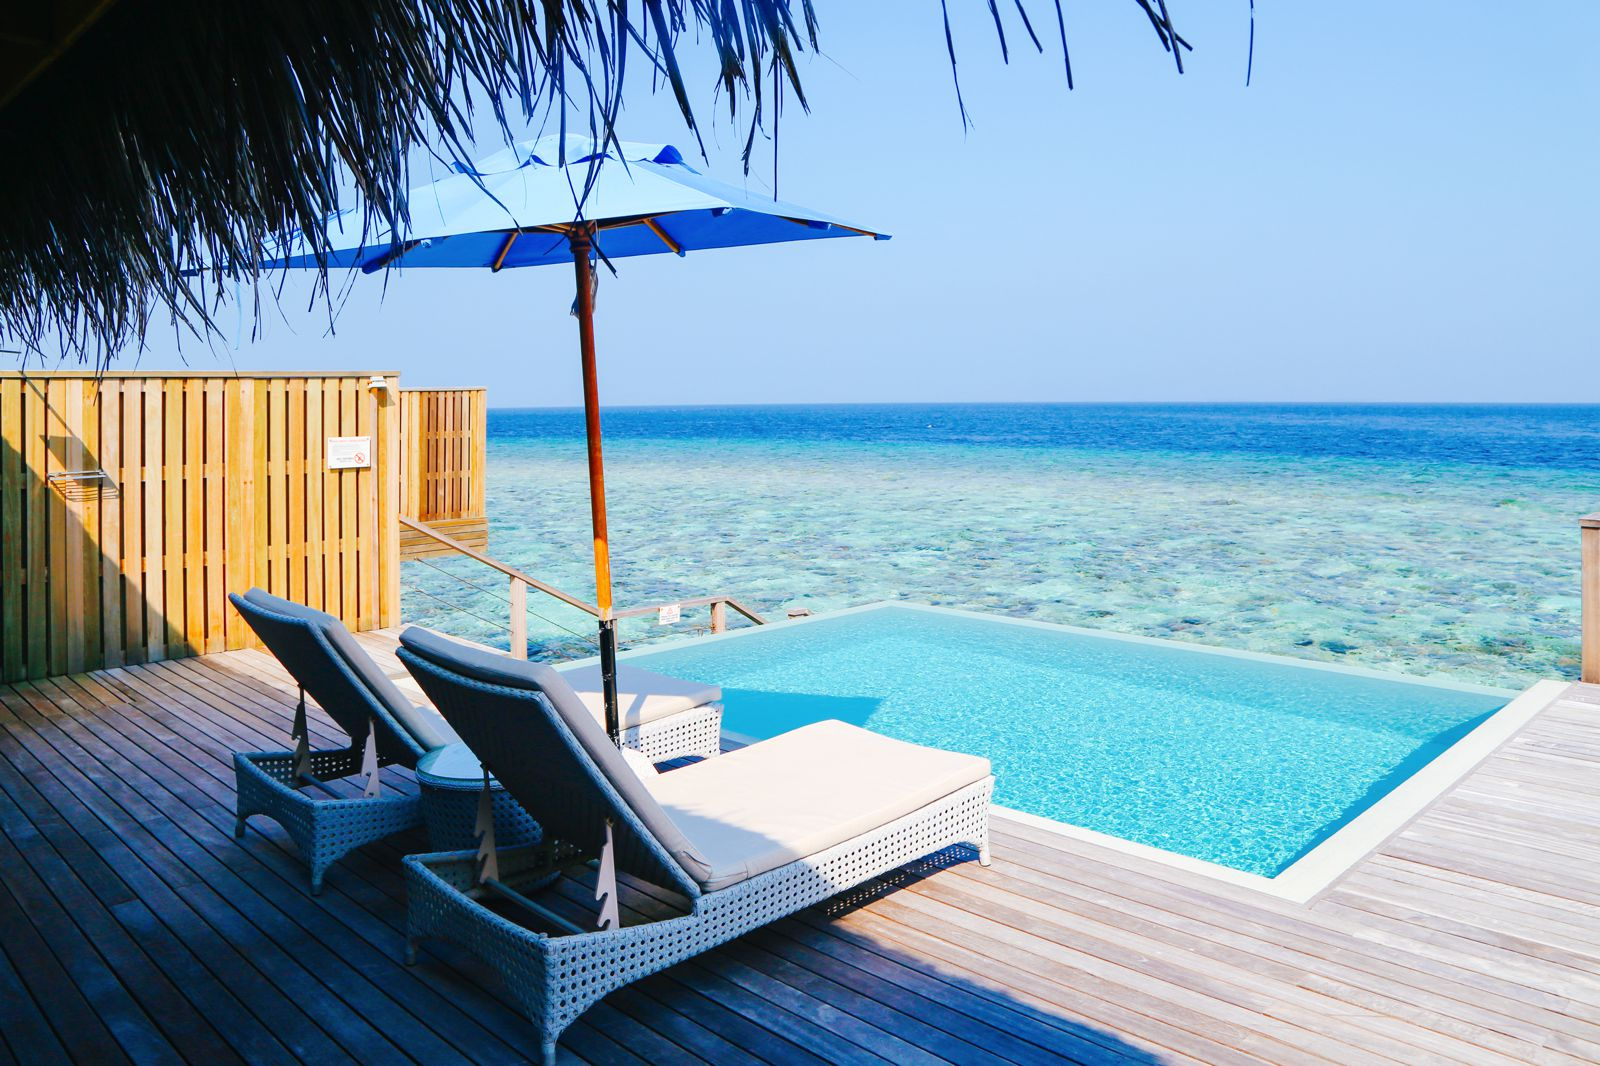 Arrival At The Dusit Thani In The Maldives! (20)